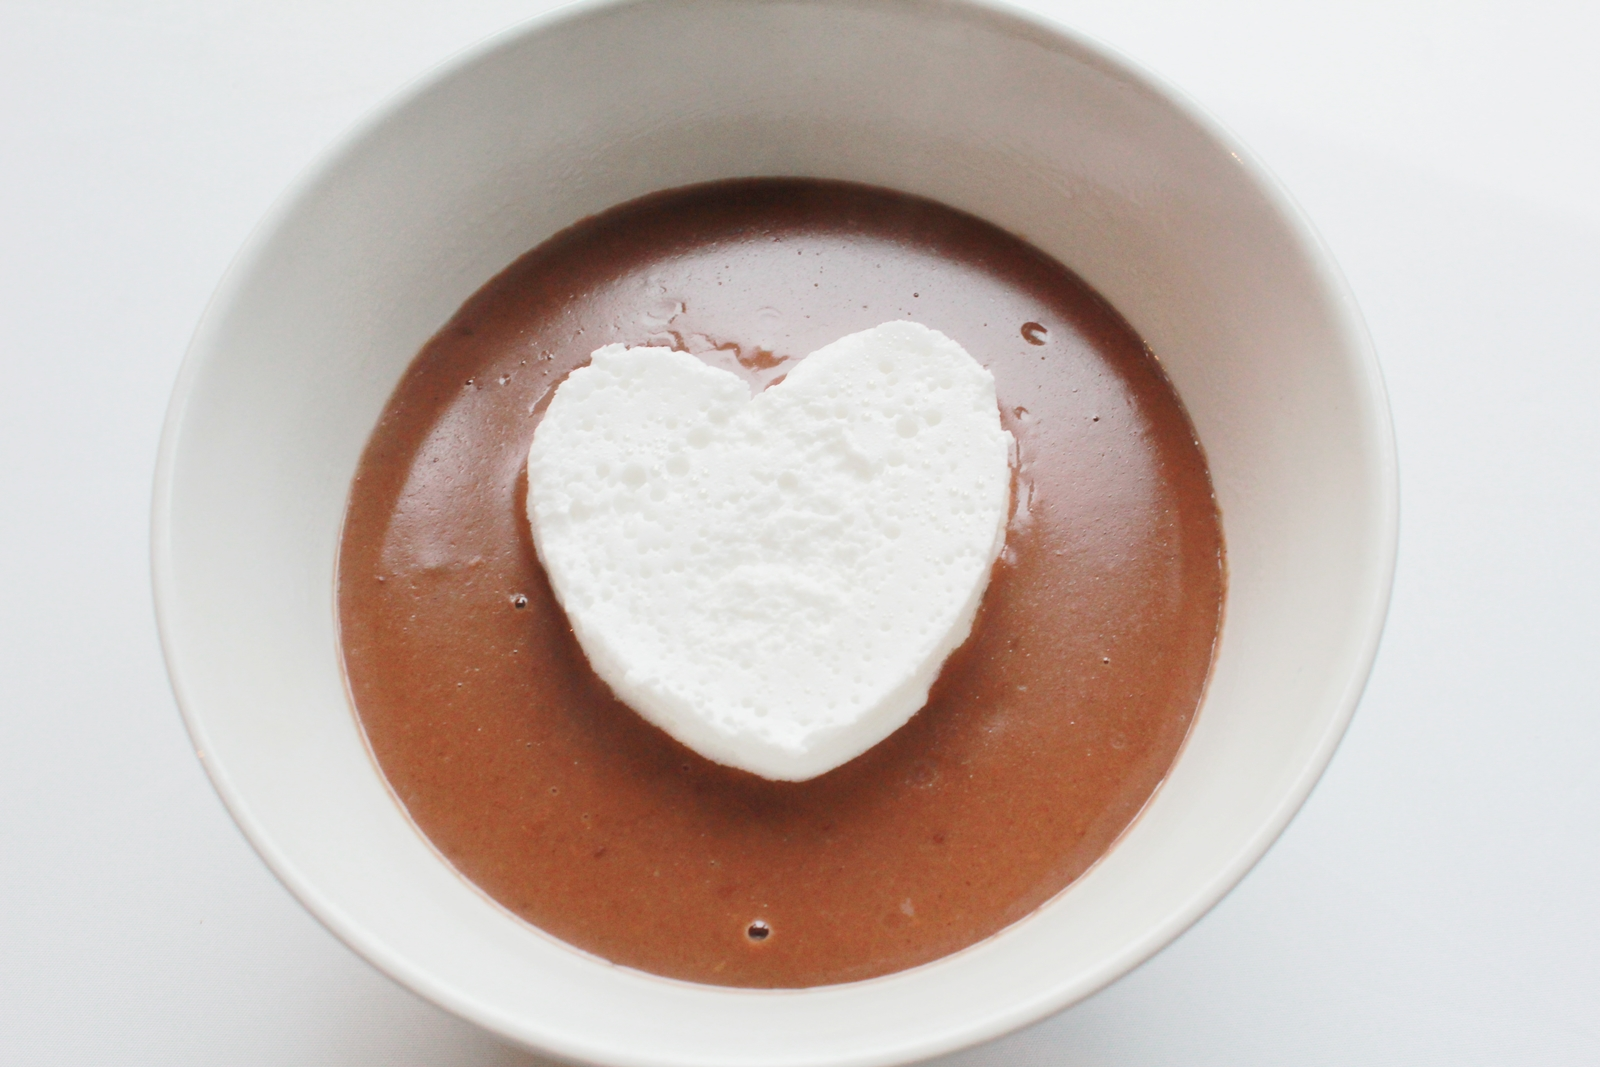 Bol au chocolat with homemade marshmallow heart